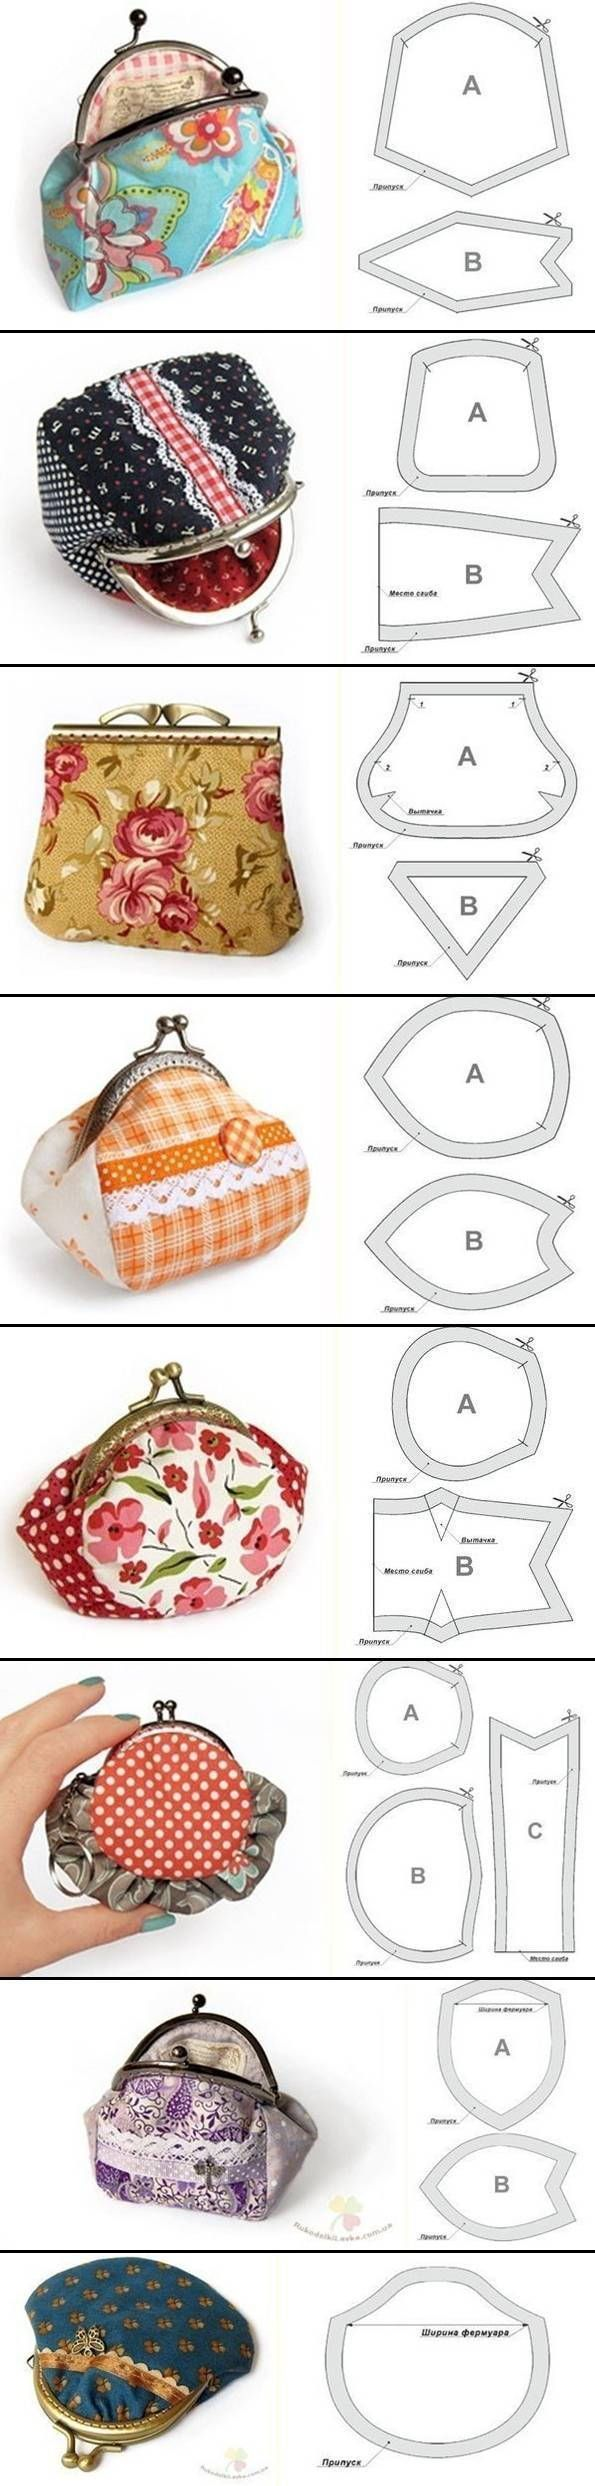 DIY Cute Purse Templates                                                                                                                                                                                 More - handbag, womens, brahmin, fossil, unique, fossil purses *ad